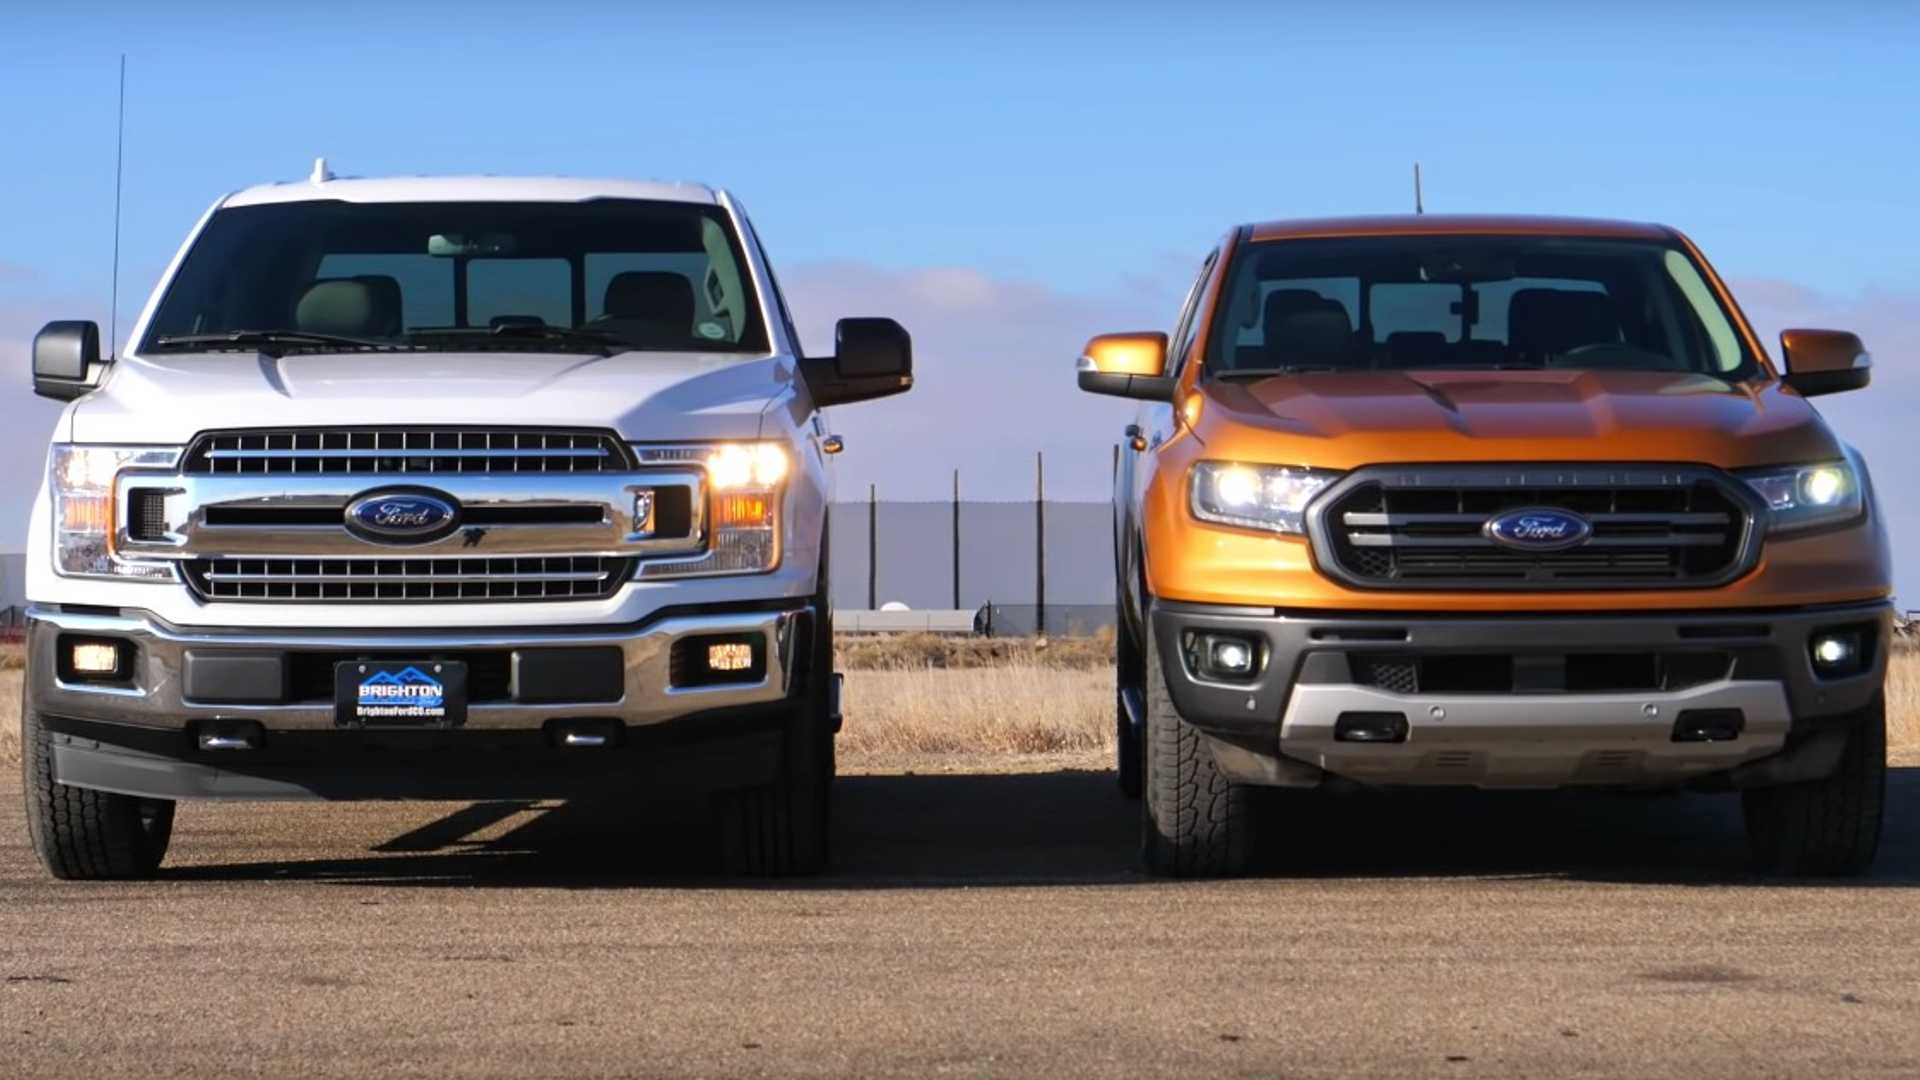 2019 Ford Ranger Takes On F-150 In Head-To-Head Drag Race